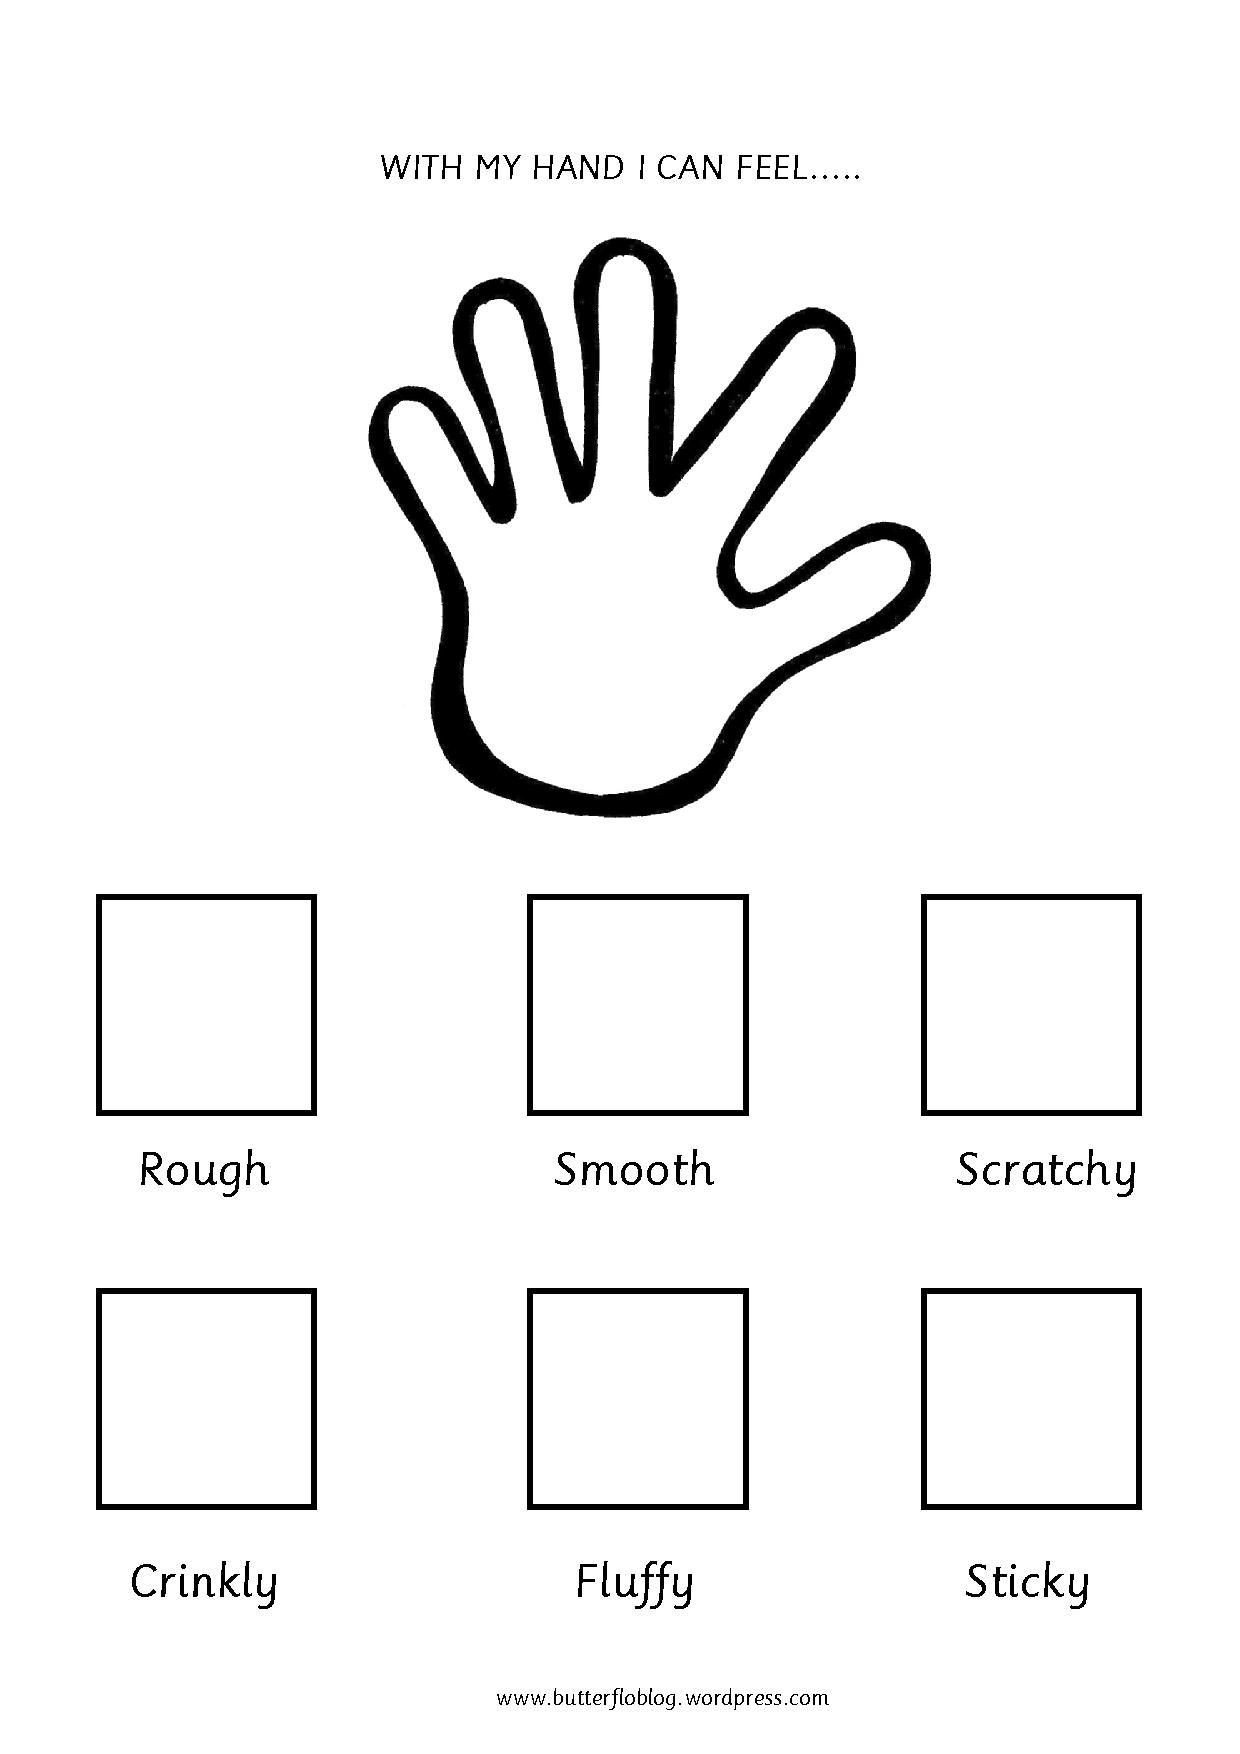 5 Senses Printable Worksheets the Five Senses touch